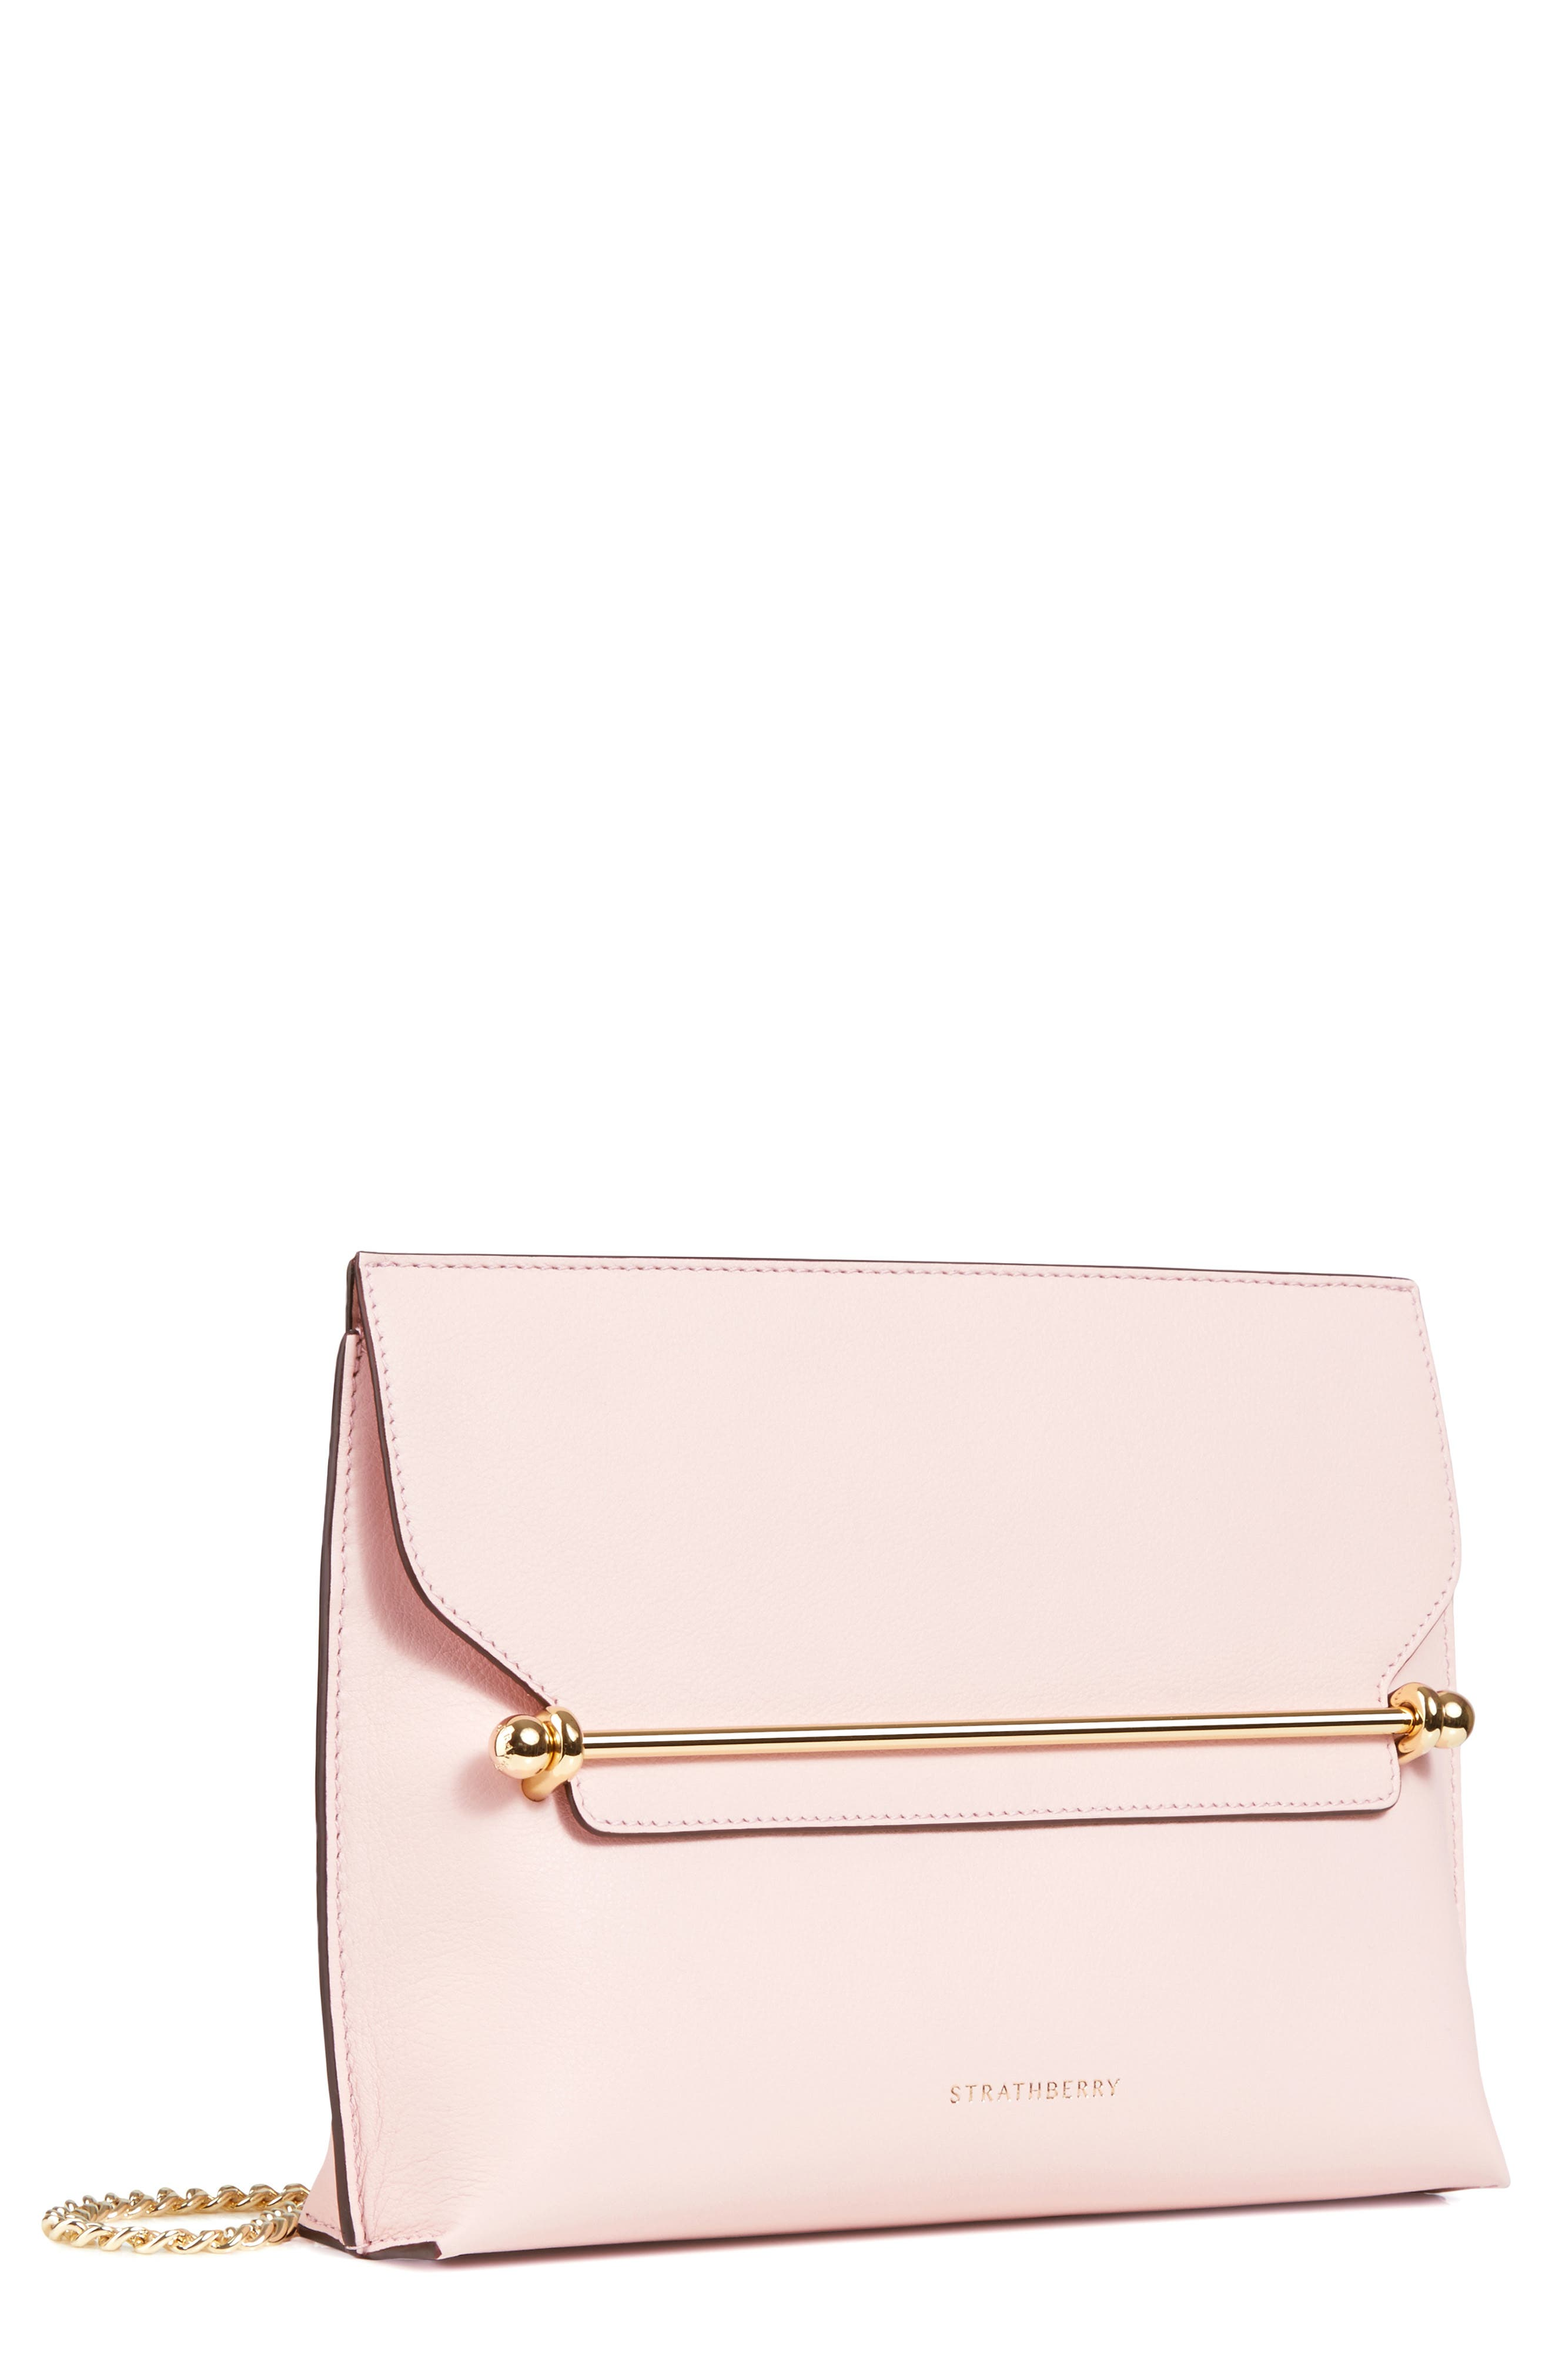 STRATHBERRY East/West Stylist Leather Clutch, Main, color, BABY PINK